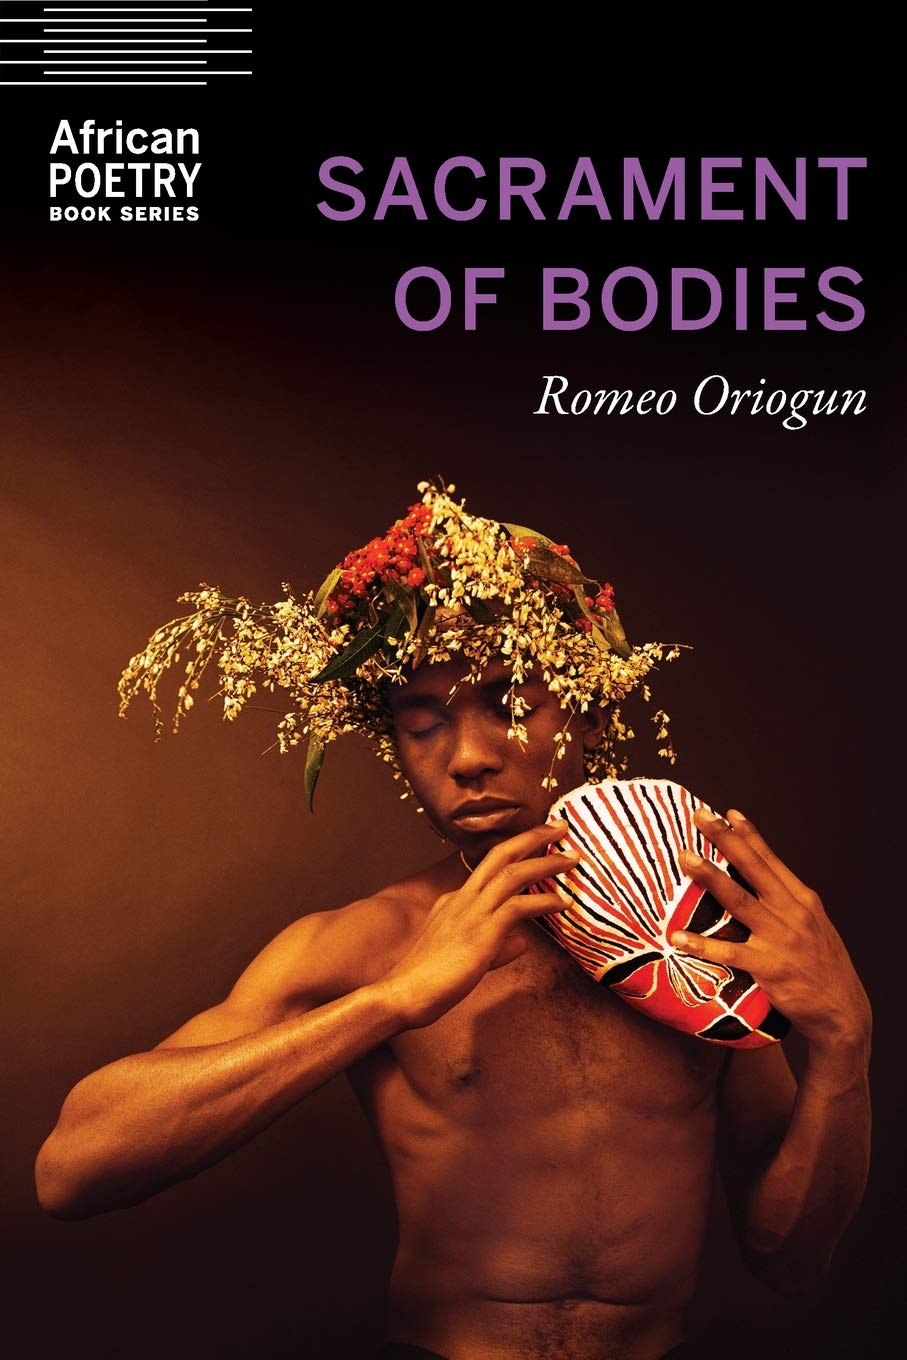 Sacrament of Bodies by Romeo Oriogun